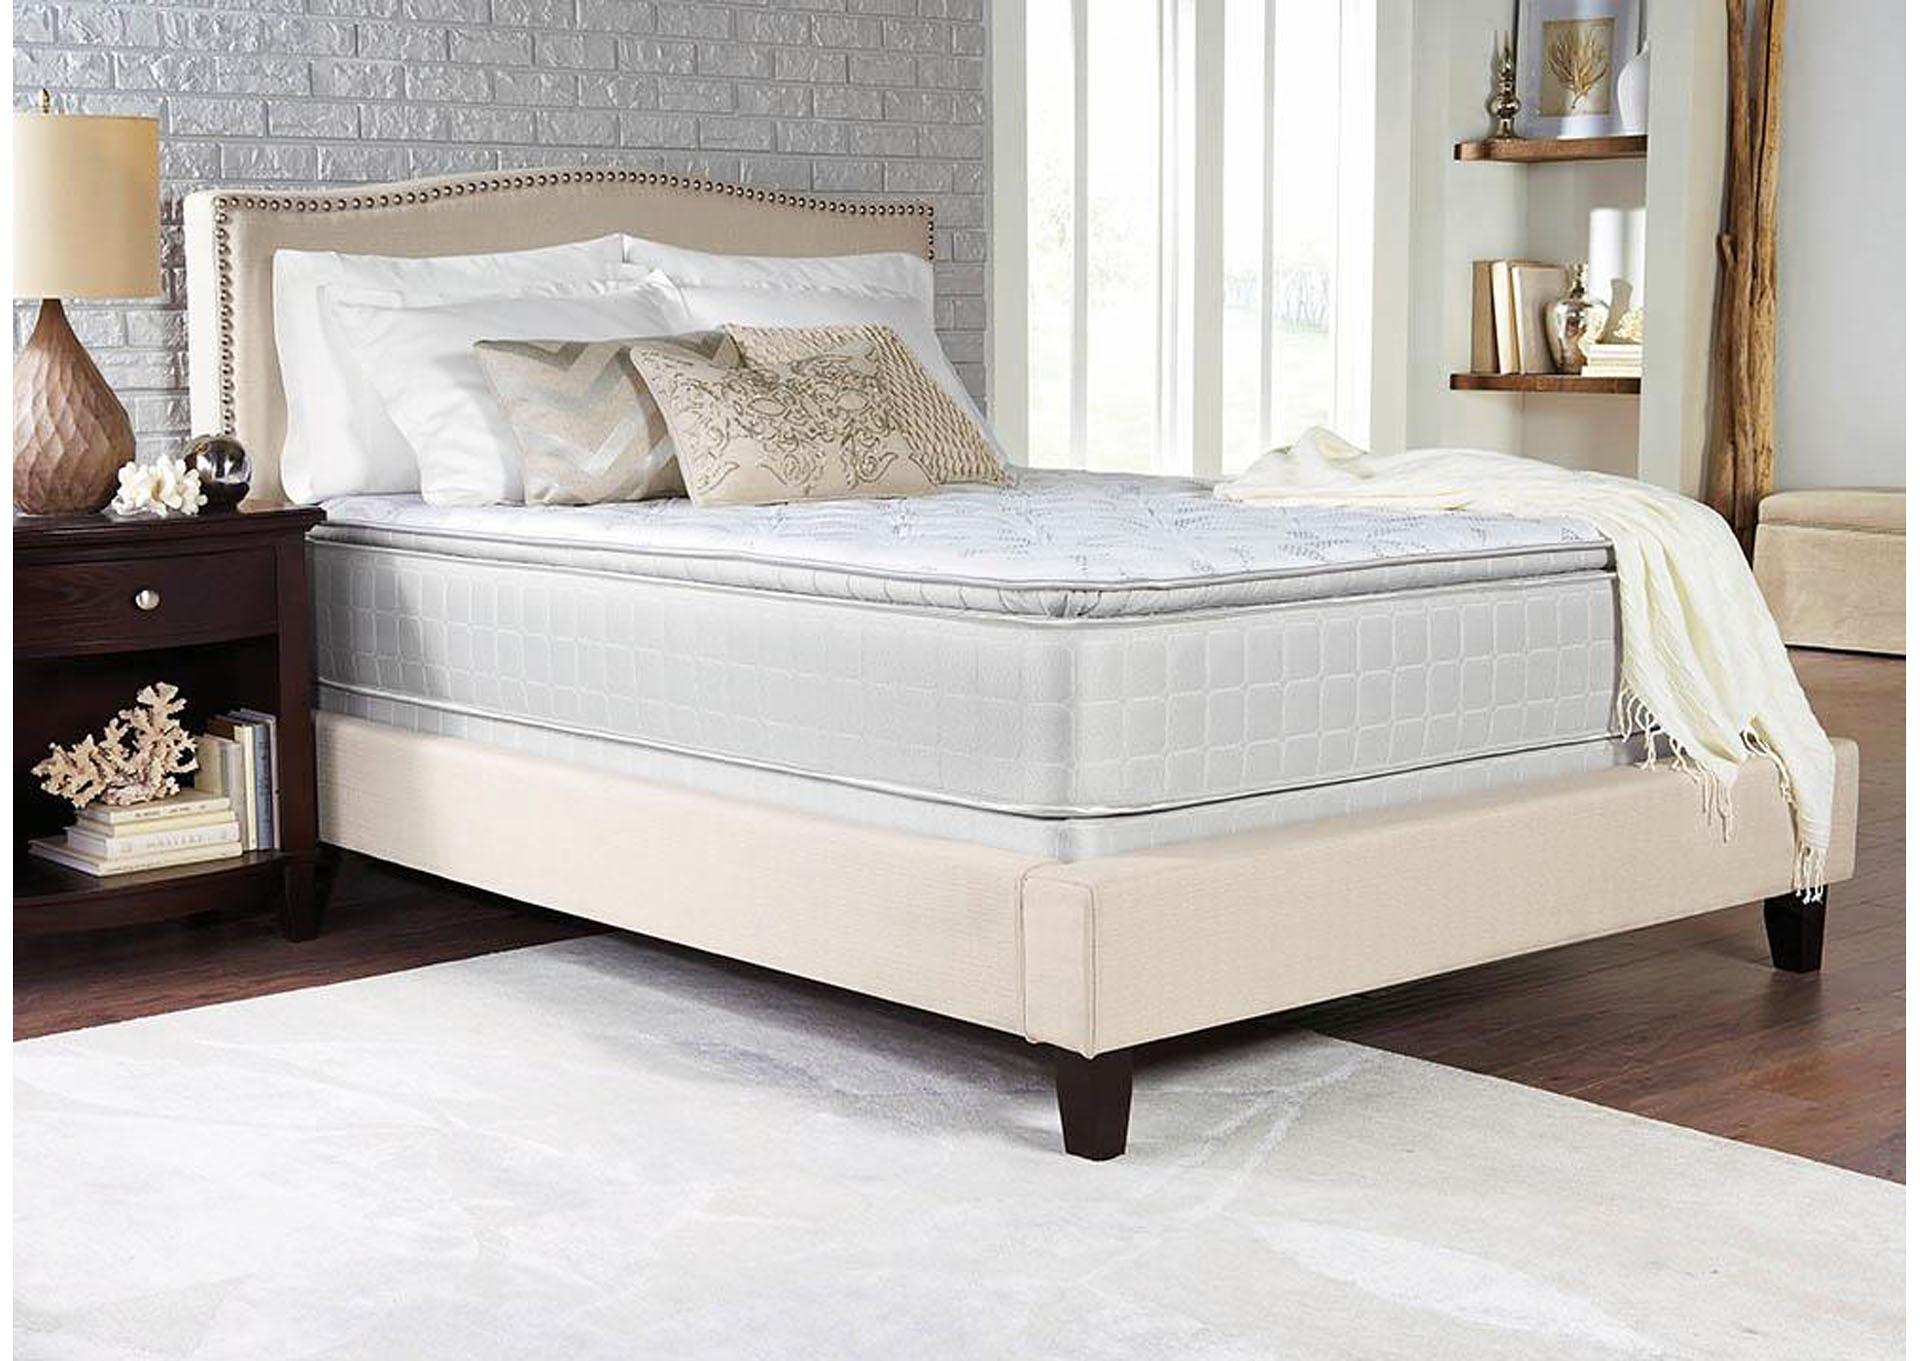 Marbella Pillow Top Queen Mattress,ABF Coaster Furniture